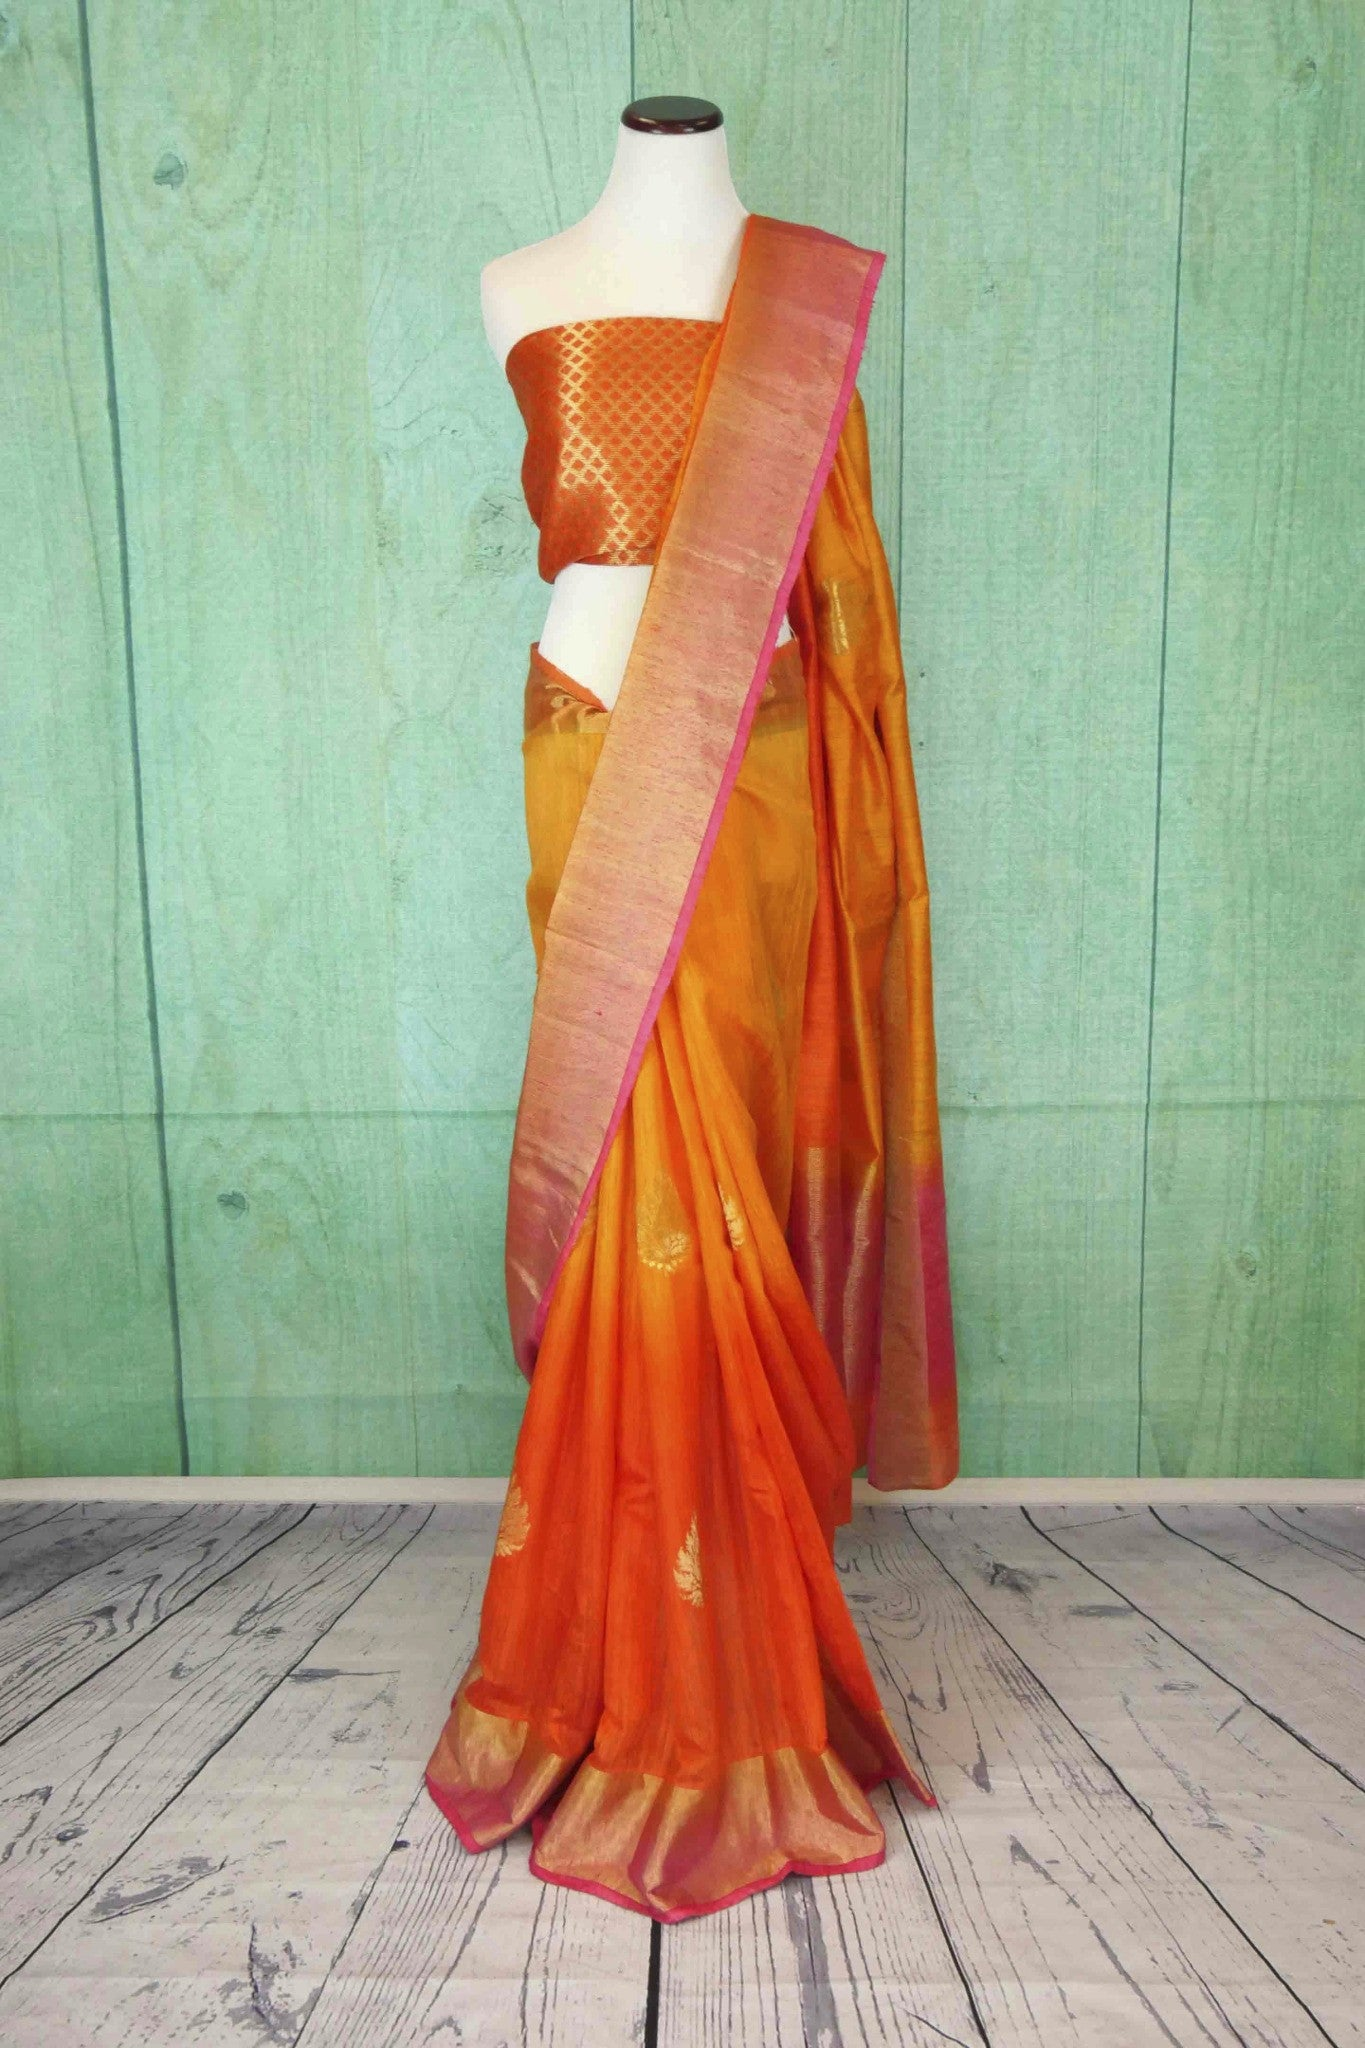 90C181 Shaded orange and yellow, matka ghicha benarasi saree, with a soft gold border and traditional motifs. Buy this Indian saree online in USA at Pure Elegance. This one's a versatile stunner!